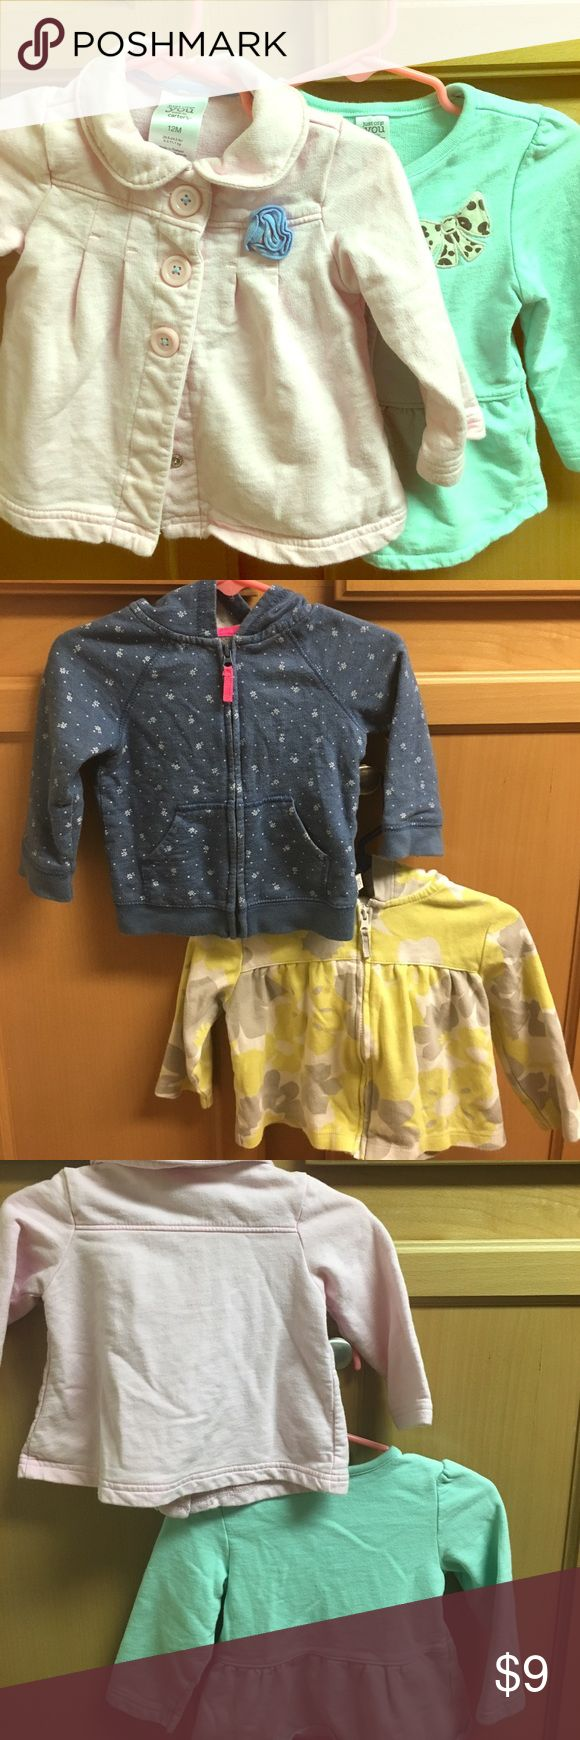 Bundle 4 jackets 12 mths good condition Bundle jacket all 12 months  1) teal no hoodie button up with animal print bow   2) pink button up jacket with a blue flower no hoodie 3) yellow and gray zip up hoodie 4) blue zip up hoodie with little flowers Jackets & Coats